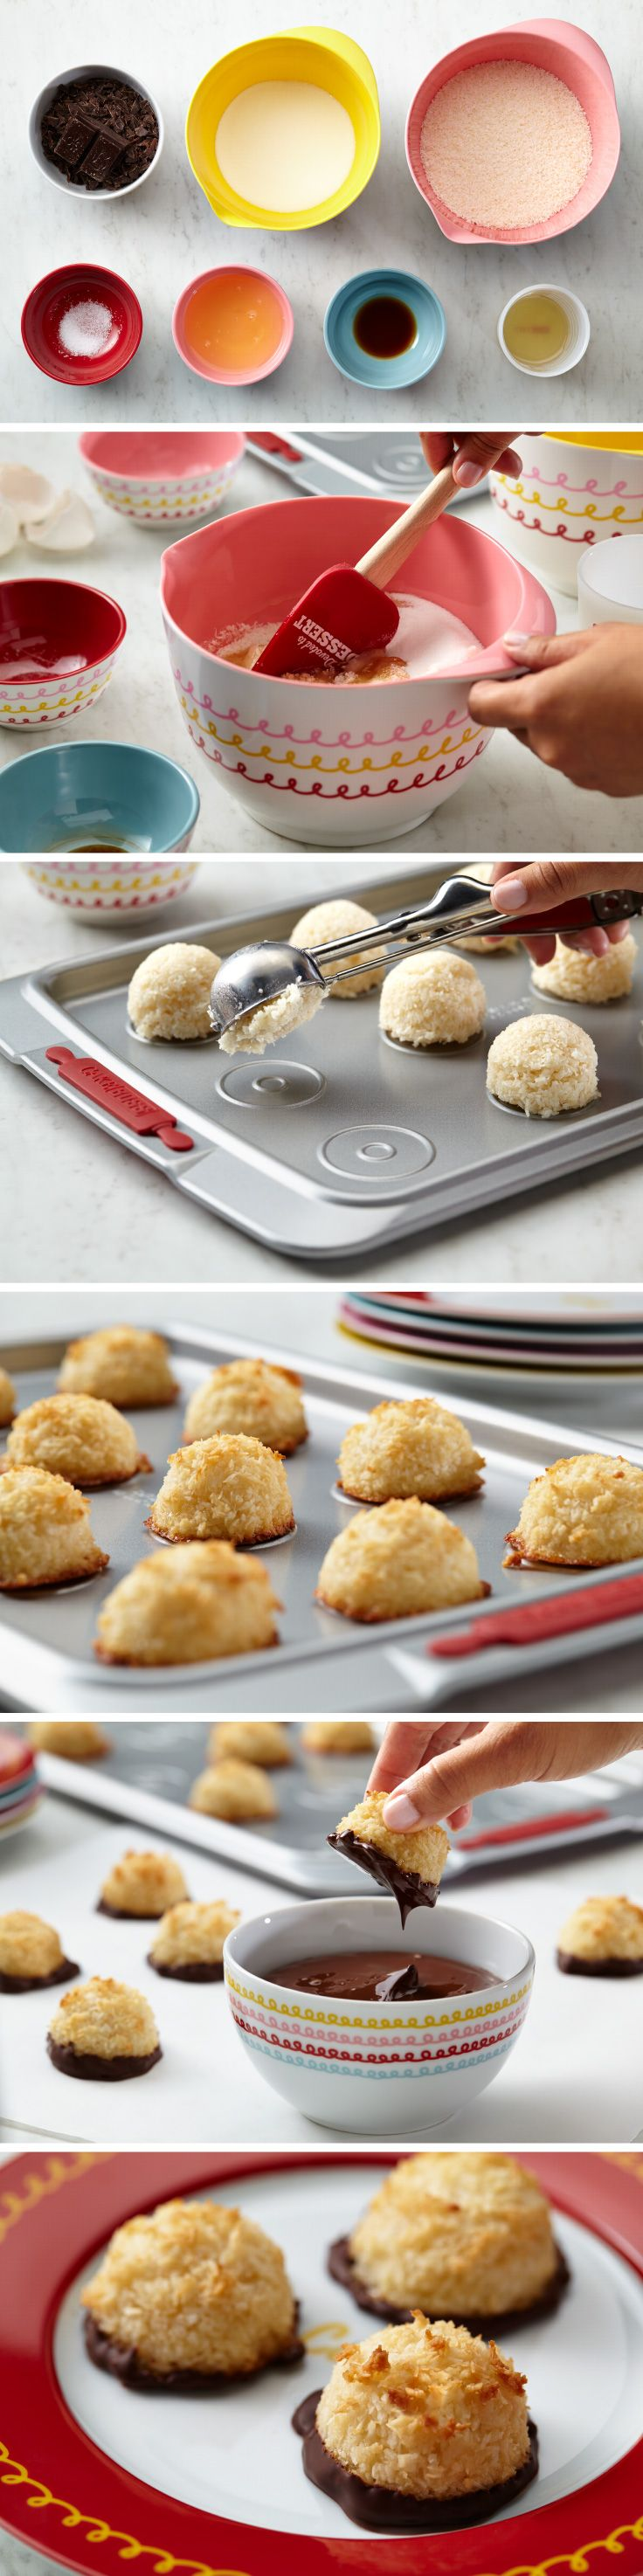 Coconut macaroons are not only stunning but tasty and gluten-free! Chewy inside and crisp on the outside, you won't be able to stop at just one. Dip bottoms in chocolate, drizzle tops with chocolate, stir in dried fruits or nuts. Create your own combination.